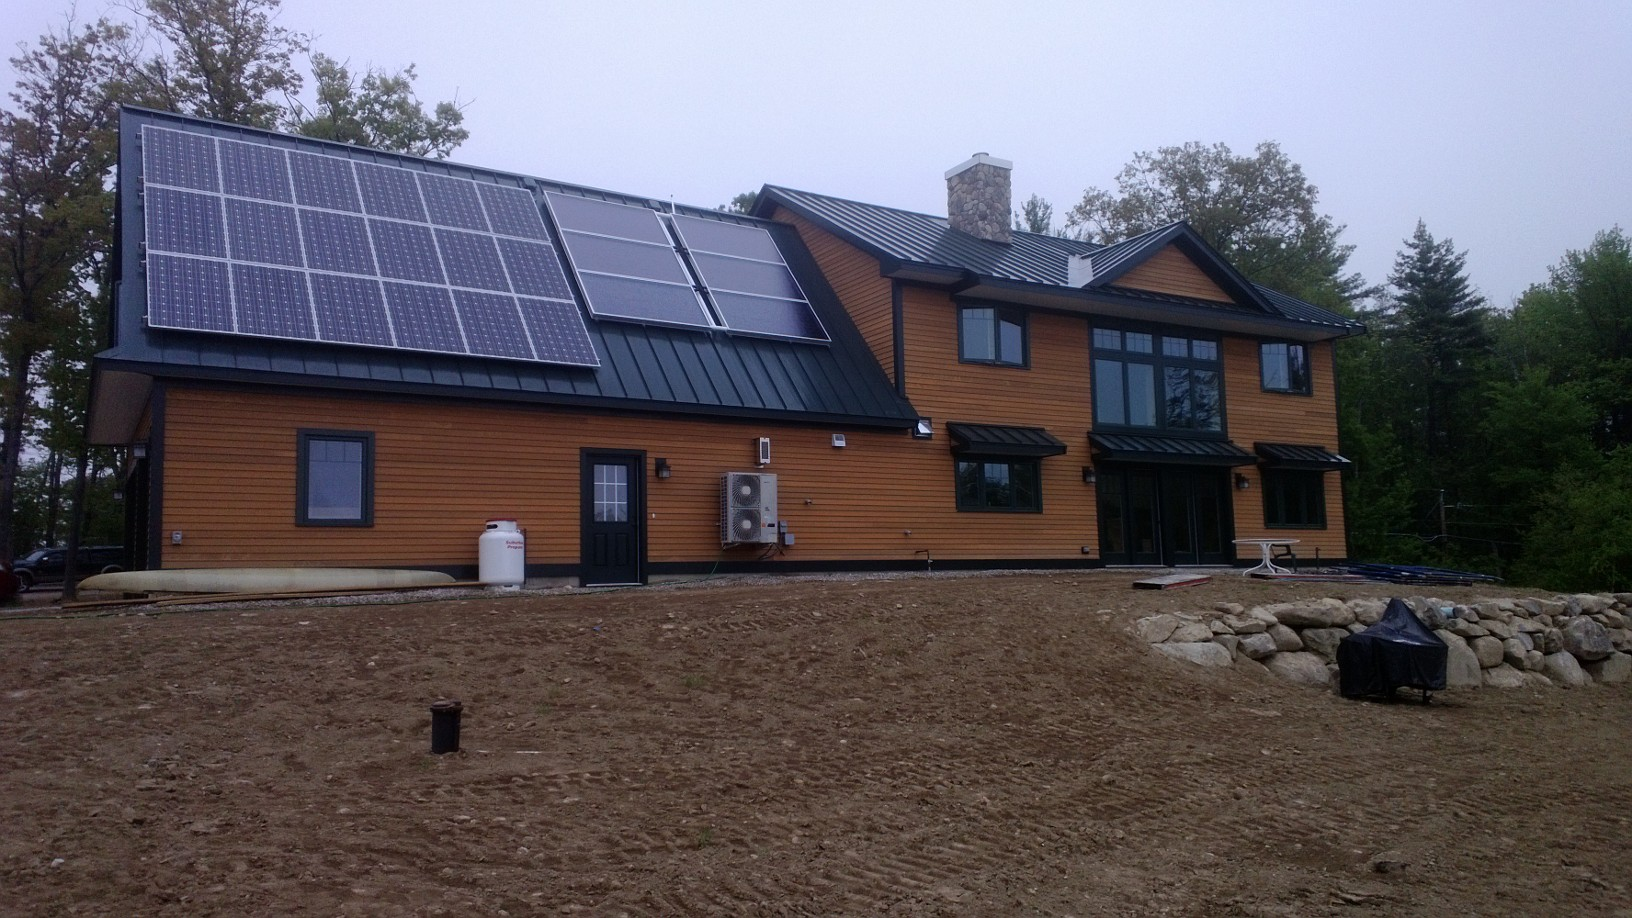 Net zero energy home in nh ridgeview construction for New construction in nh